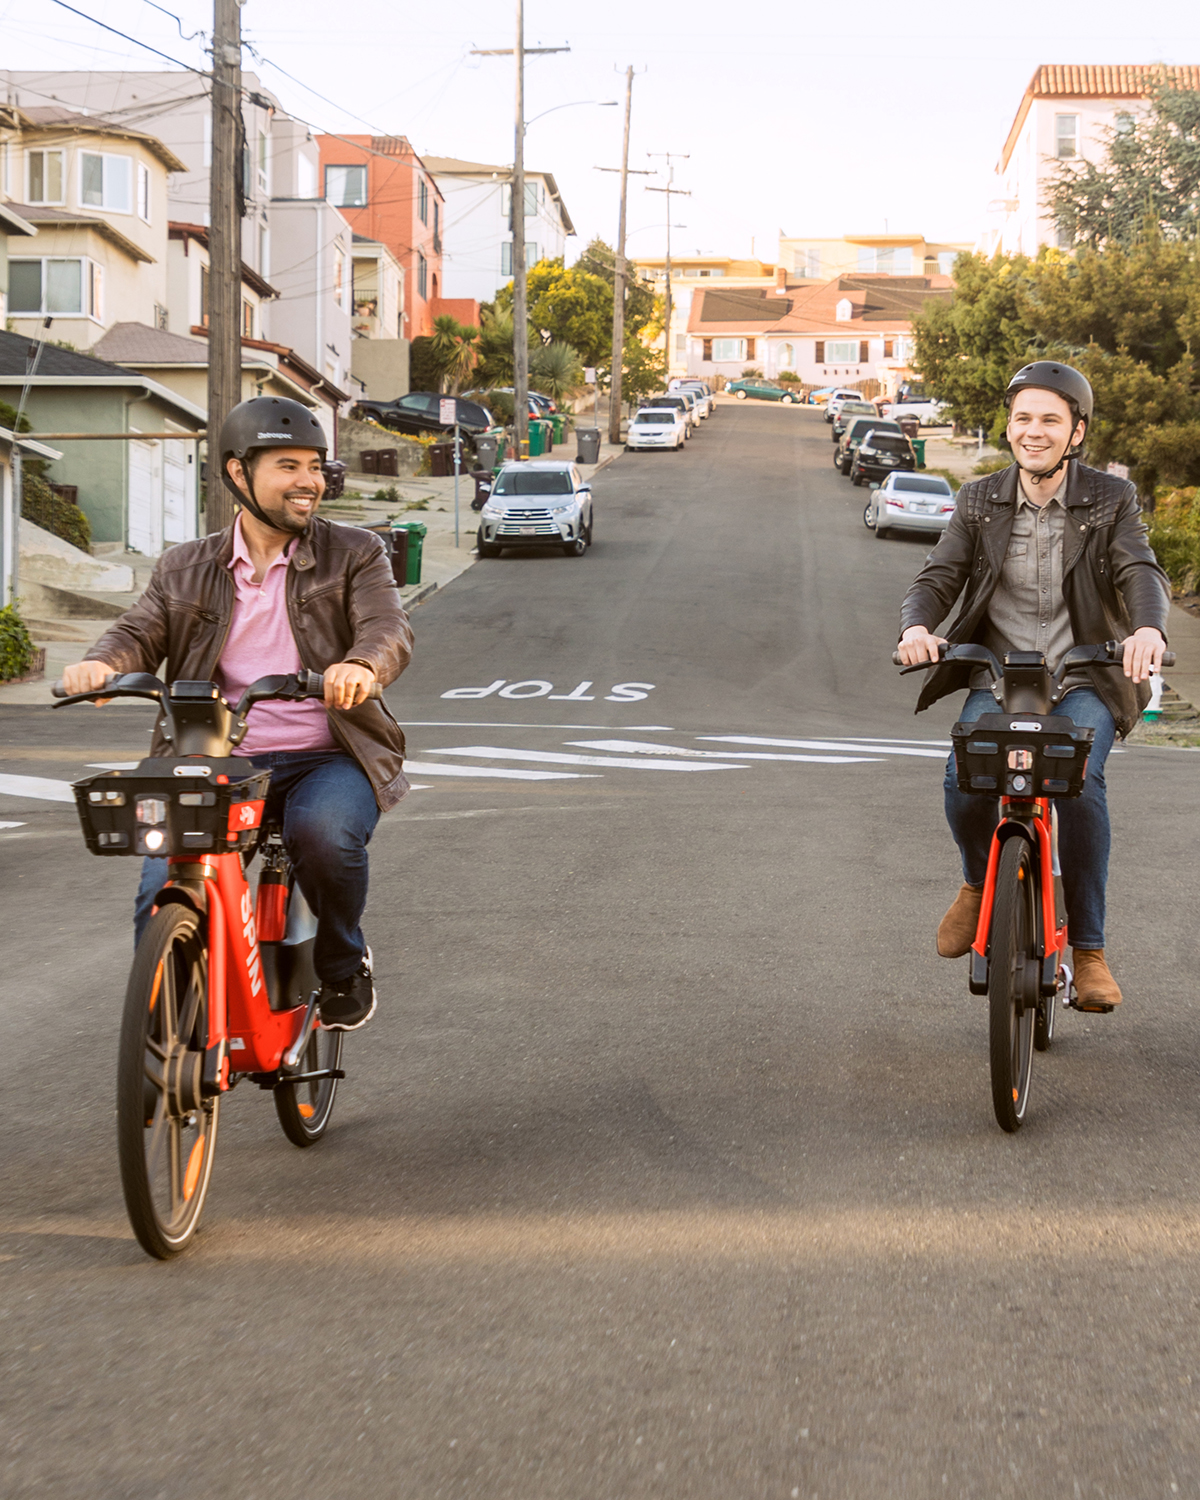 One person riding an e-scooter and one person riding an e-bike.